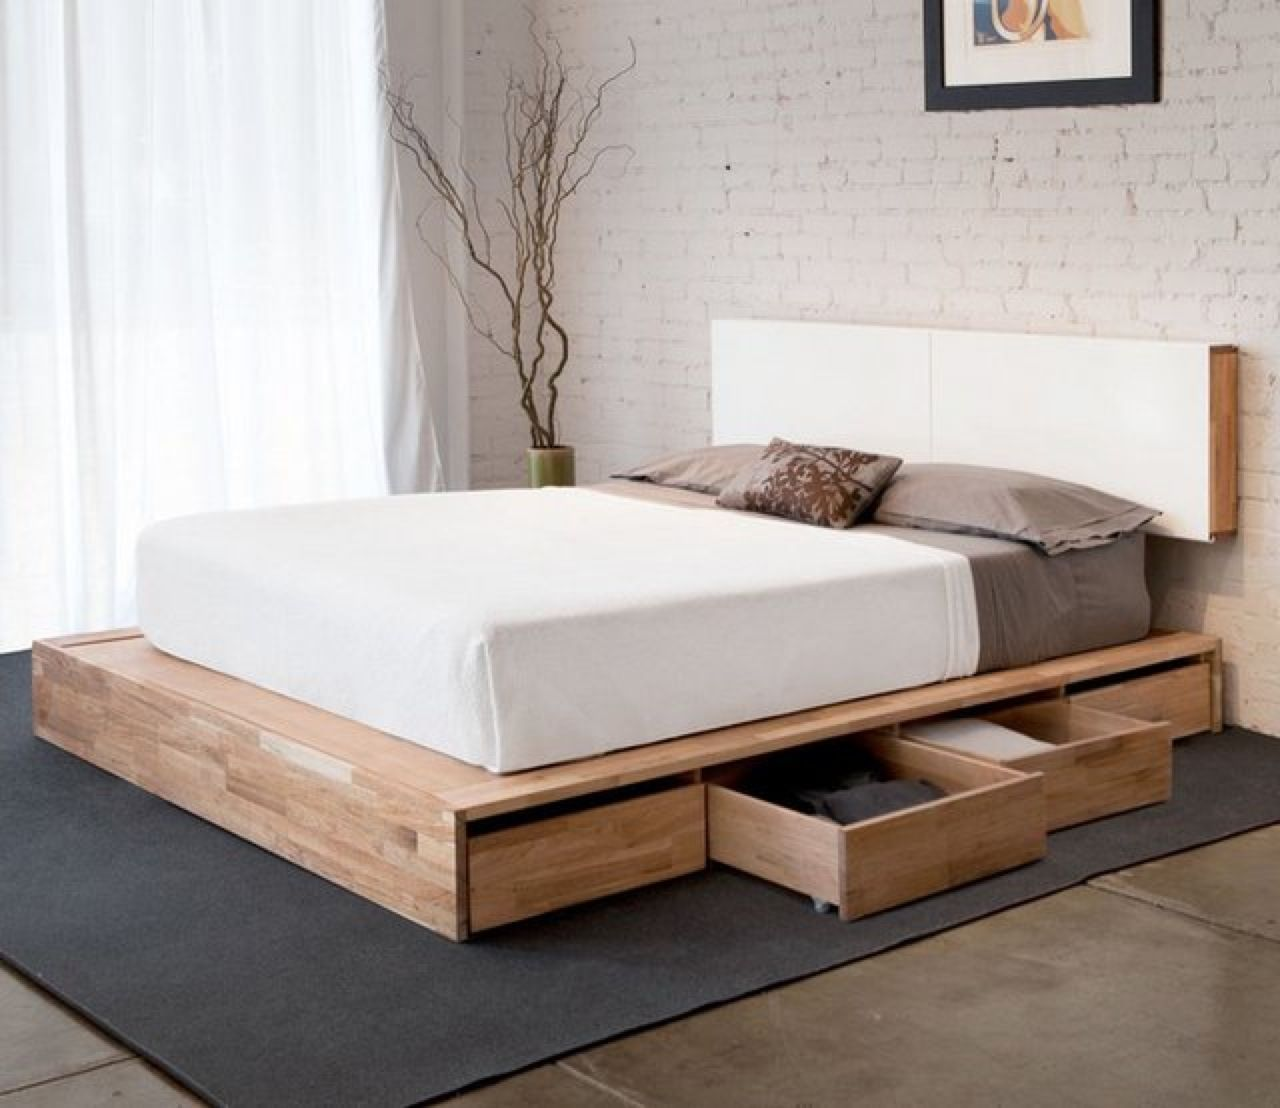 Sleek, Simple And With Storage! Mash Studios LAX Bed With Storage